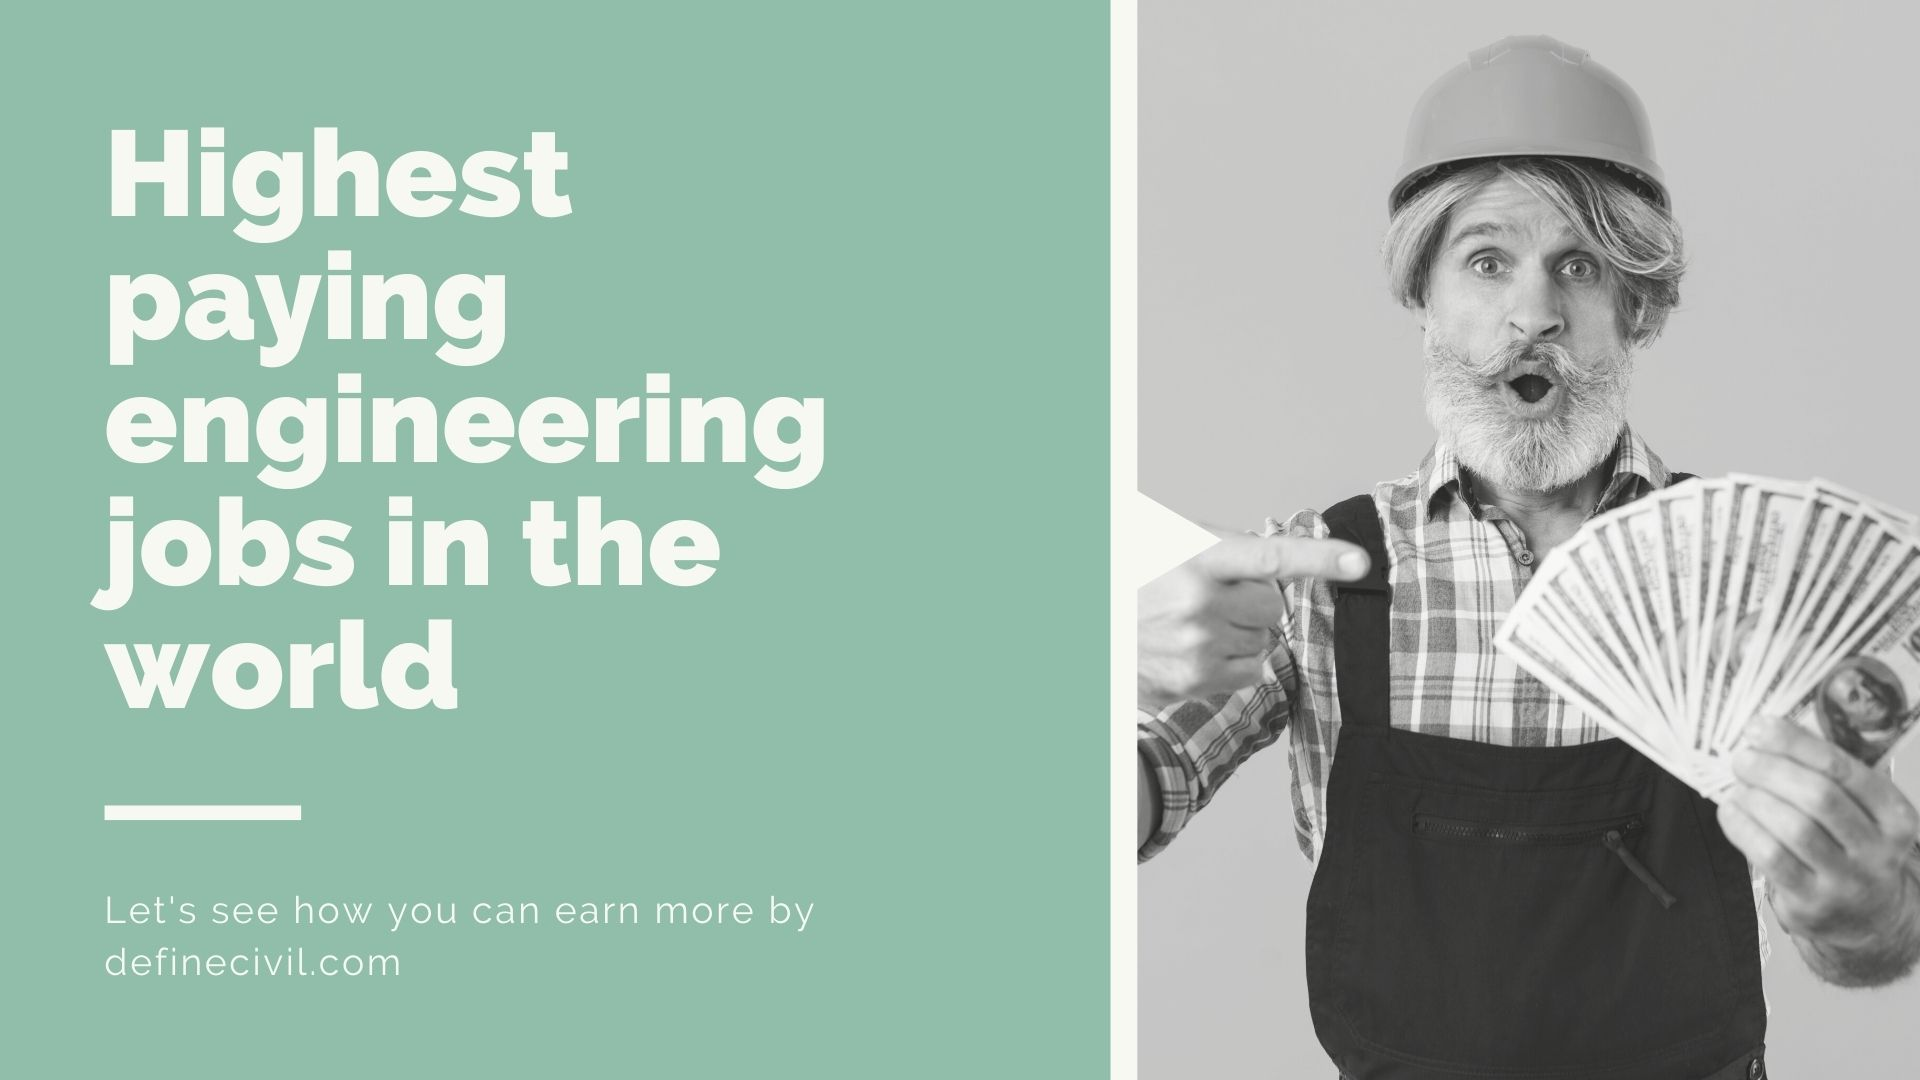 Top 10 Highest Paying Engineering Jobs